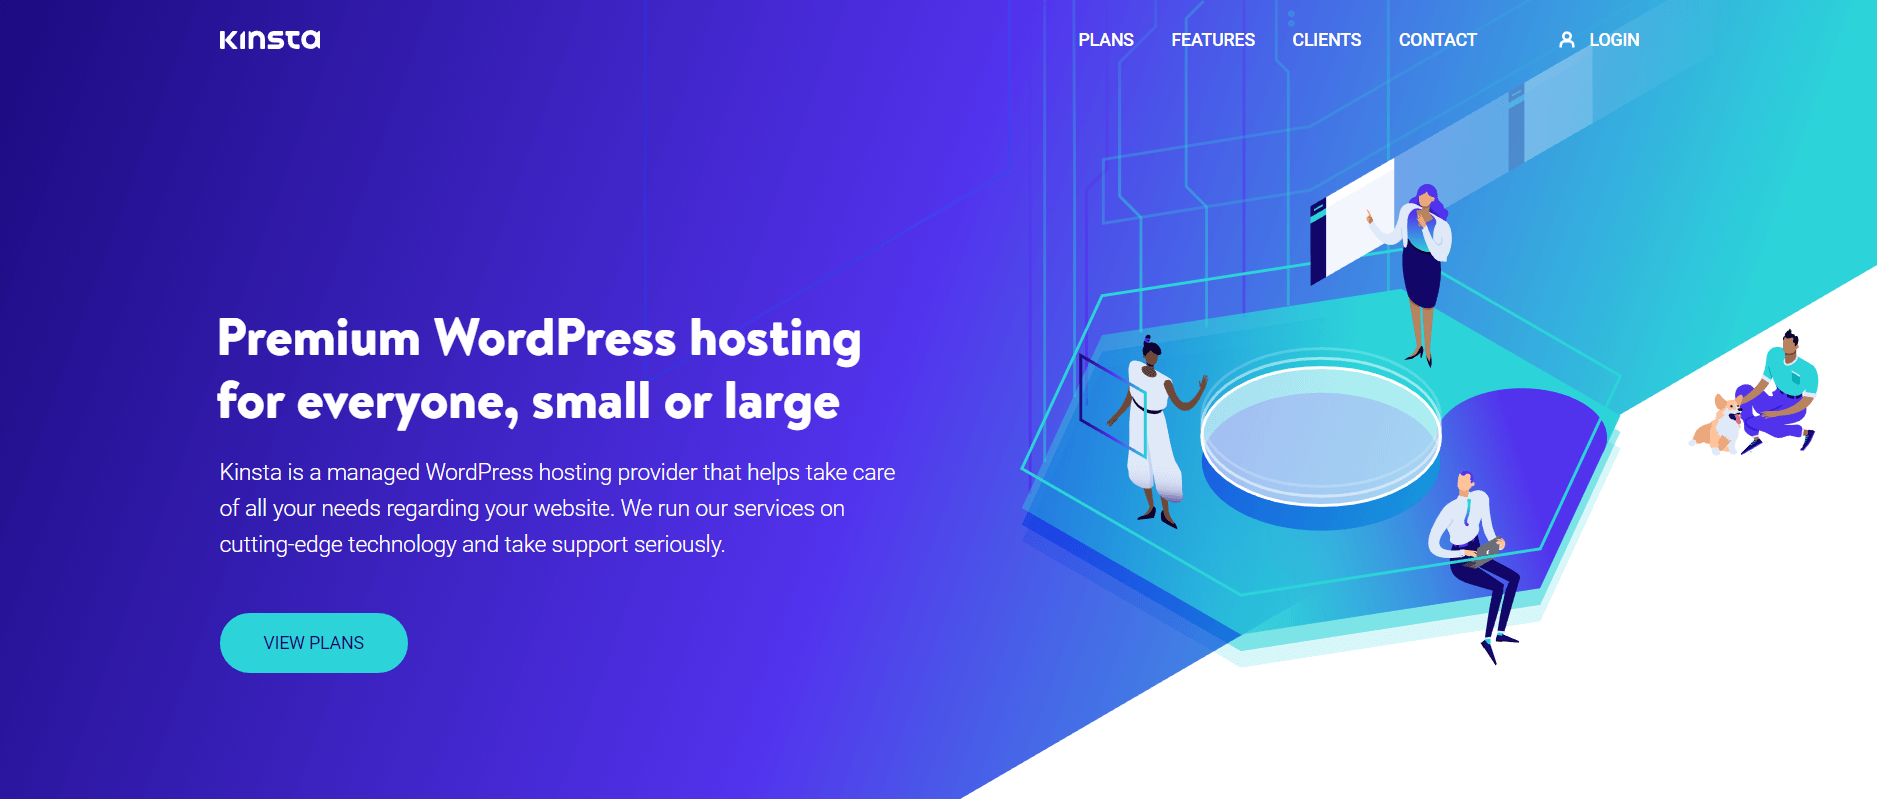 The Kinsta website.